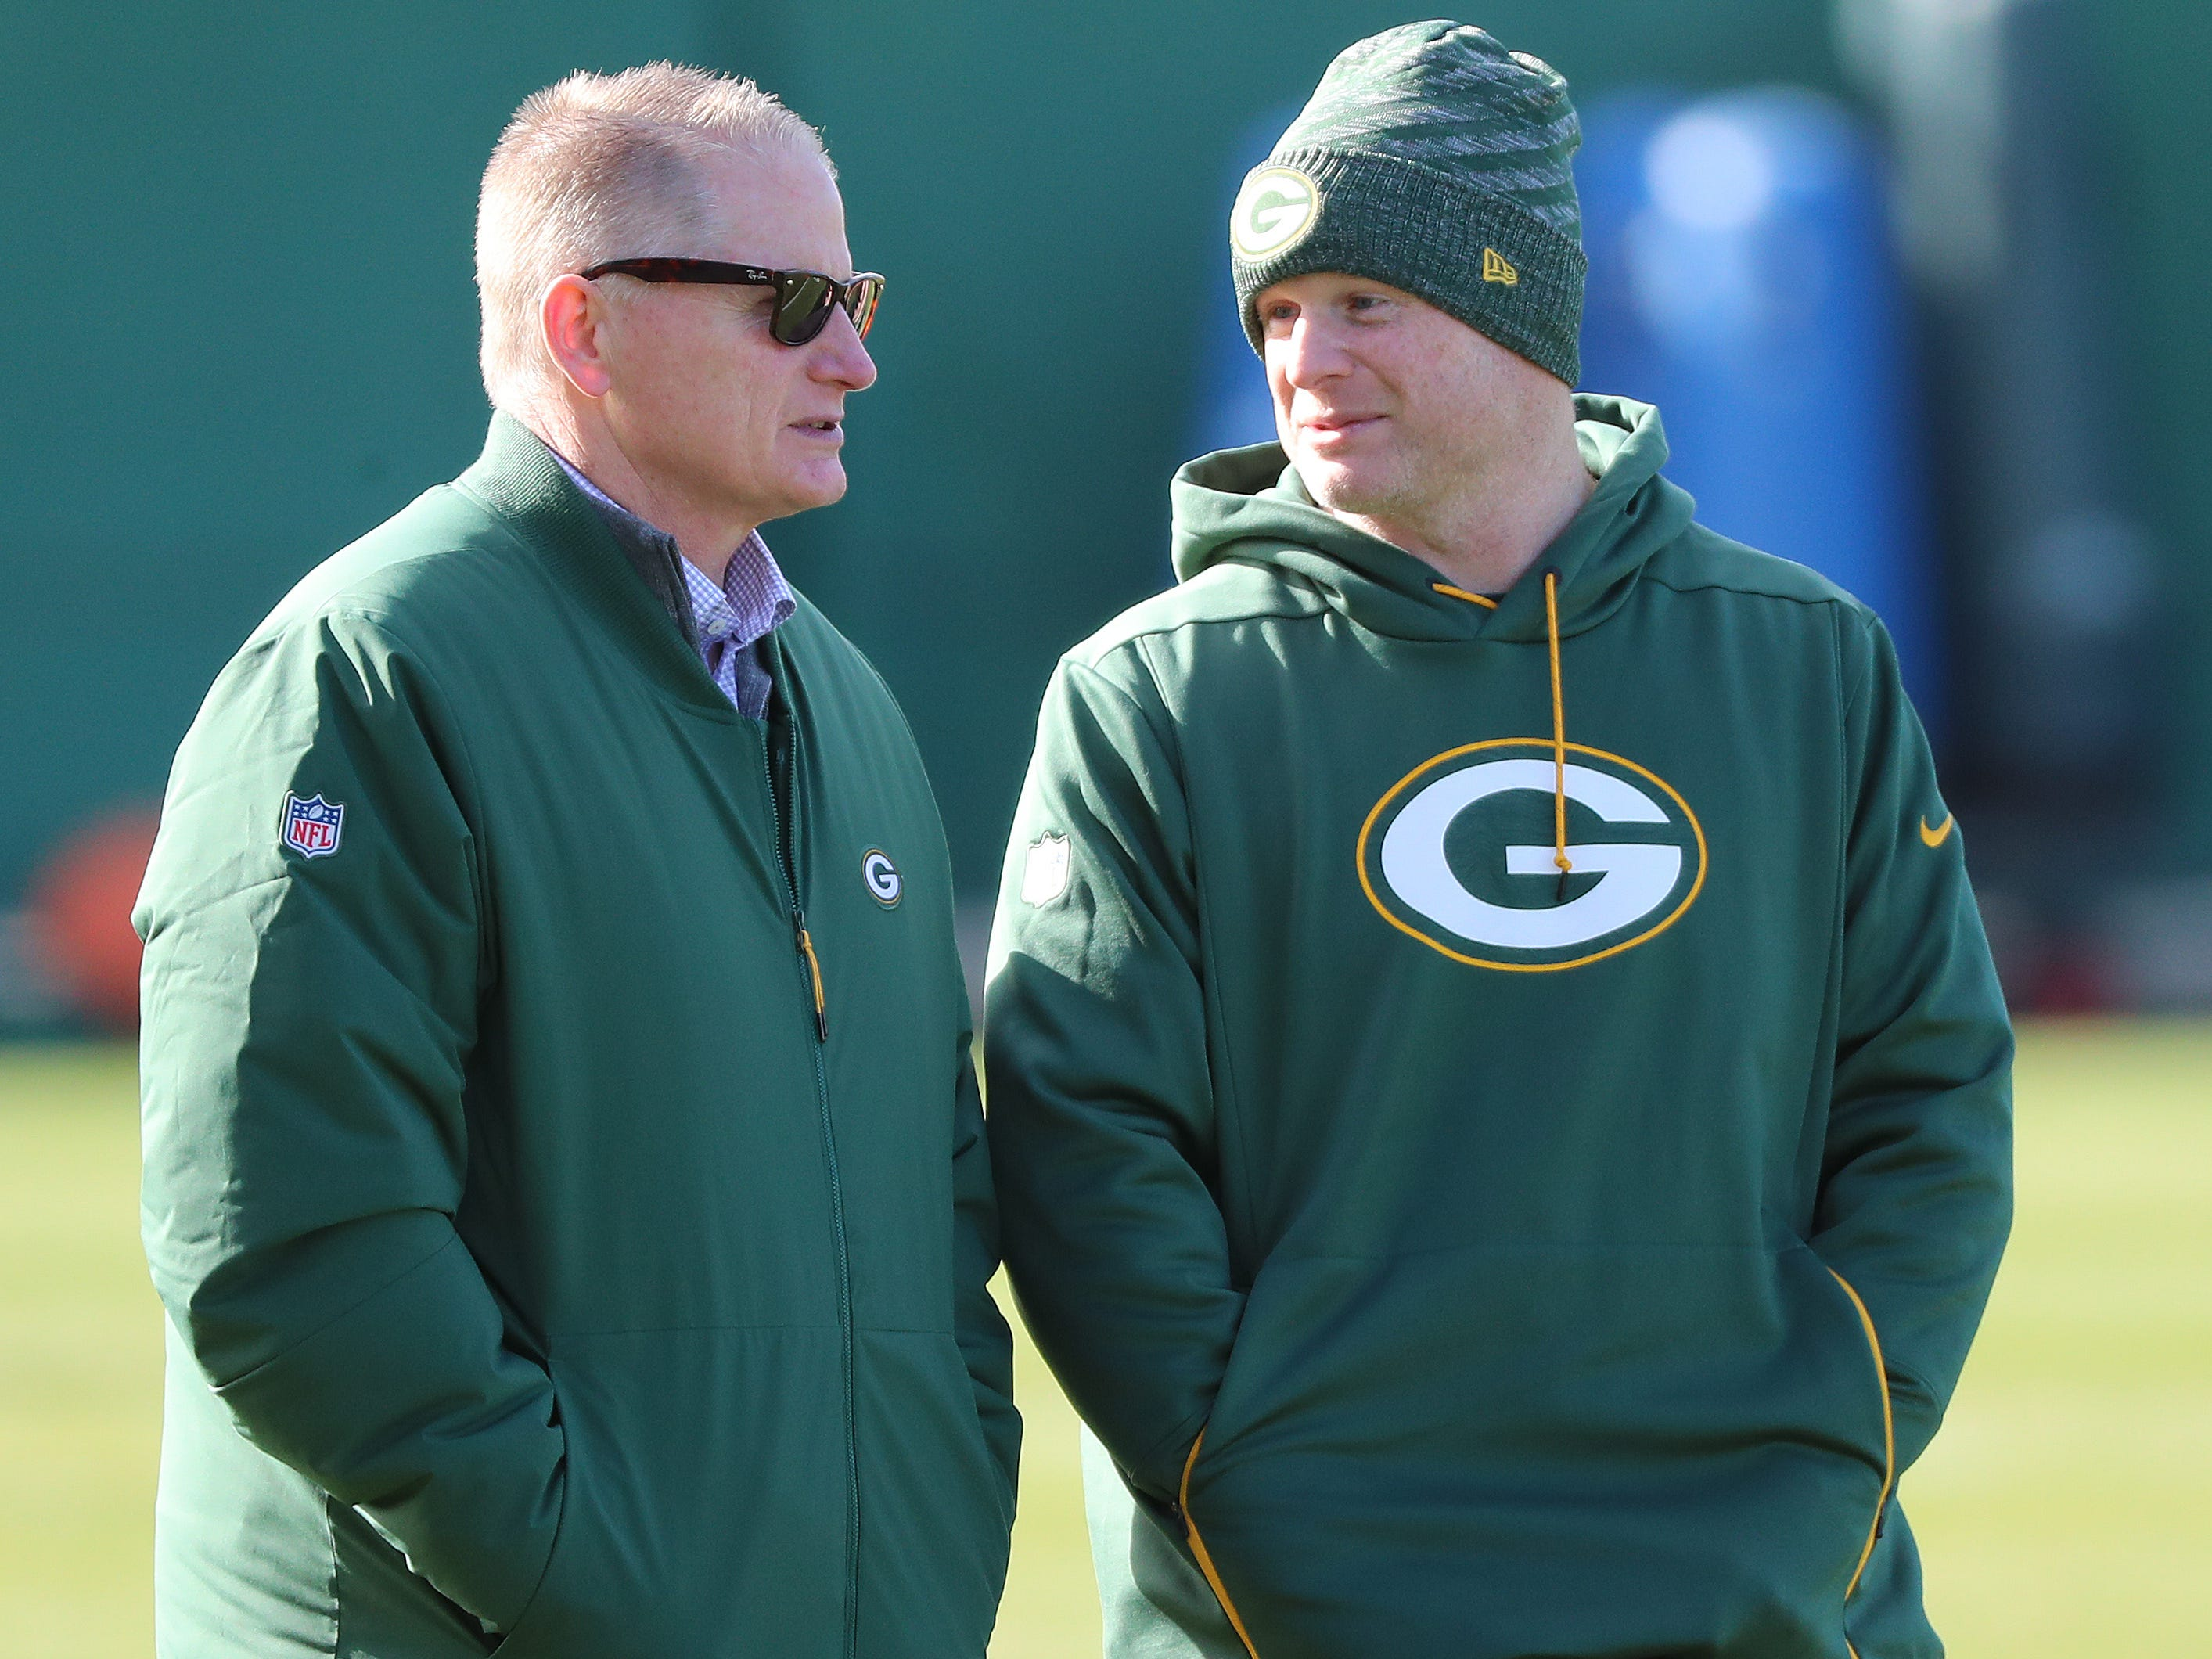 Packers general manager Brian Gutekunst, right, chats with Director of Football Operations Russ Ball during practice on Clarke Hinkle Field Thursday, November 1, 2018 in Ashwaubenon, Wis.